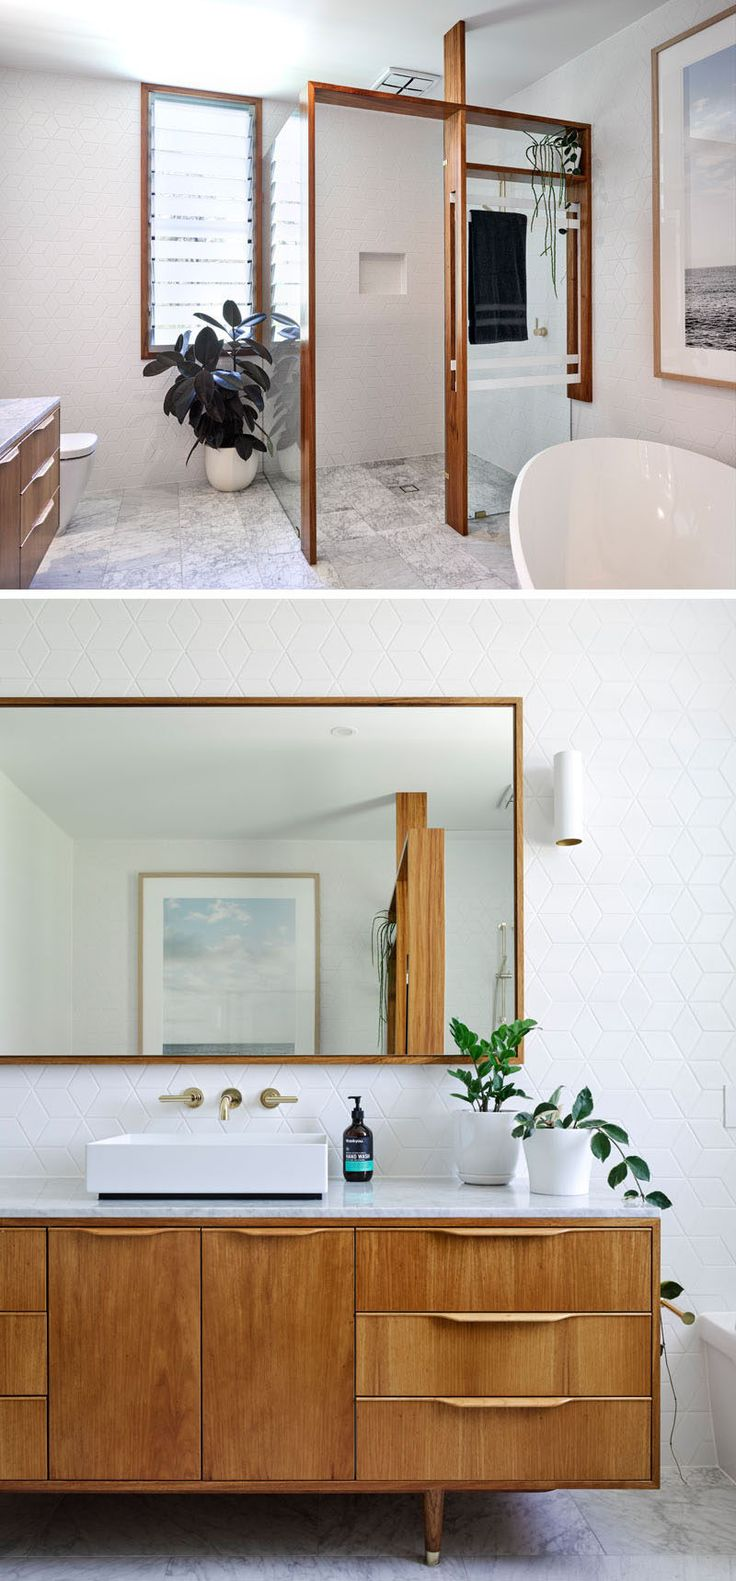 67 best Barnea images on Pinterest | Home ideas, Homes and Kitchens